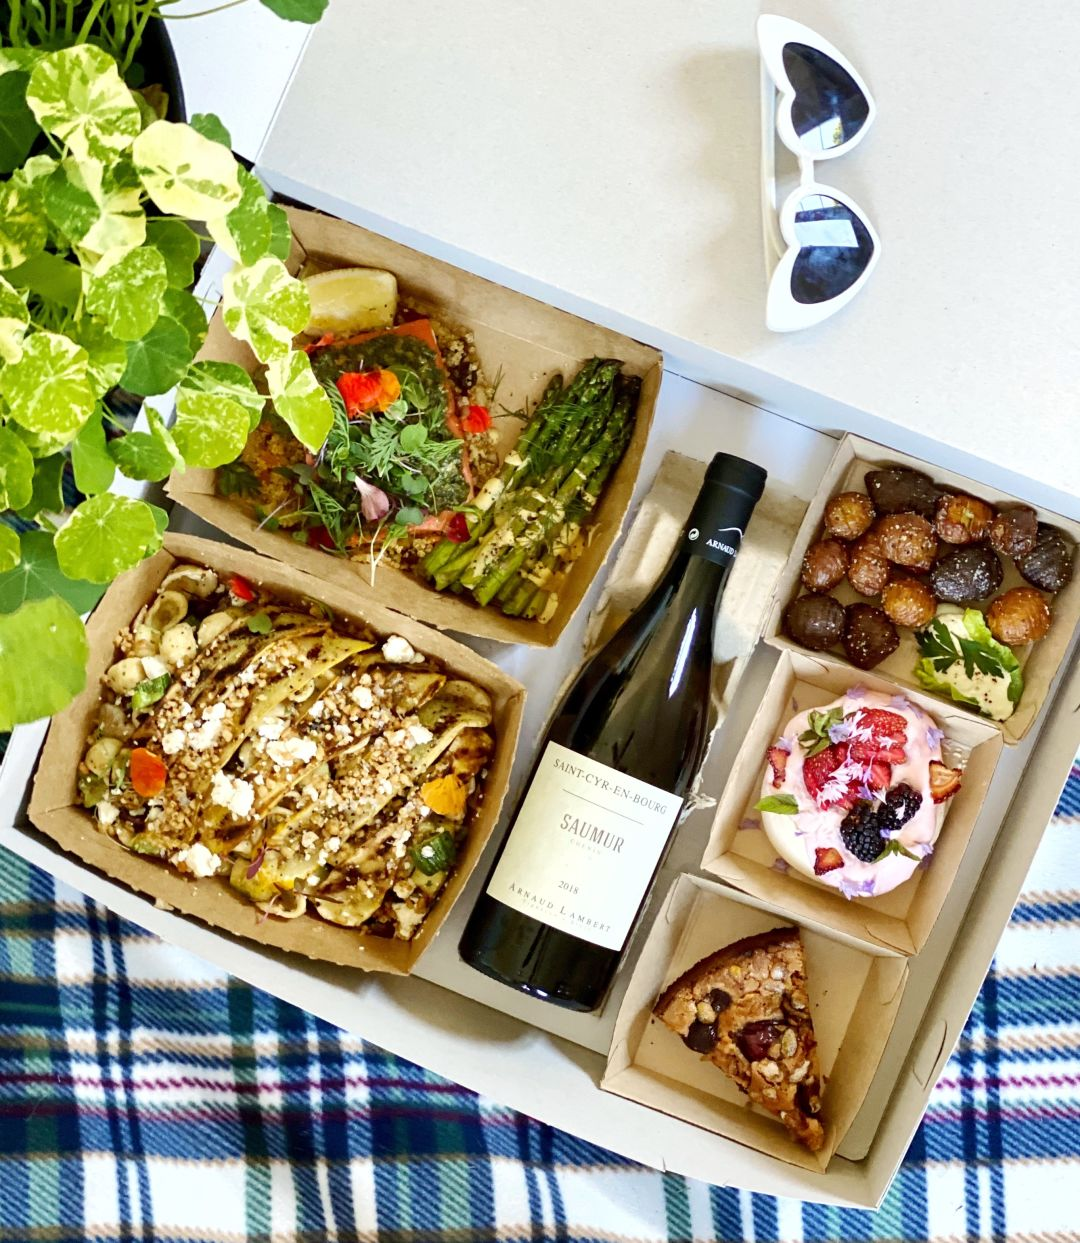 A picnic box full of veggies and wine rests on a plaid blanket.